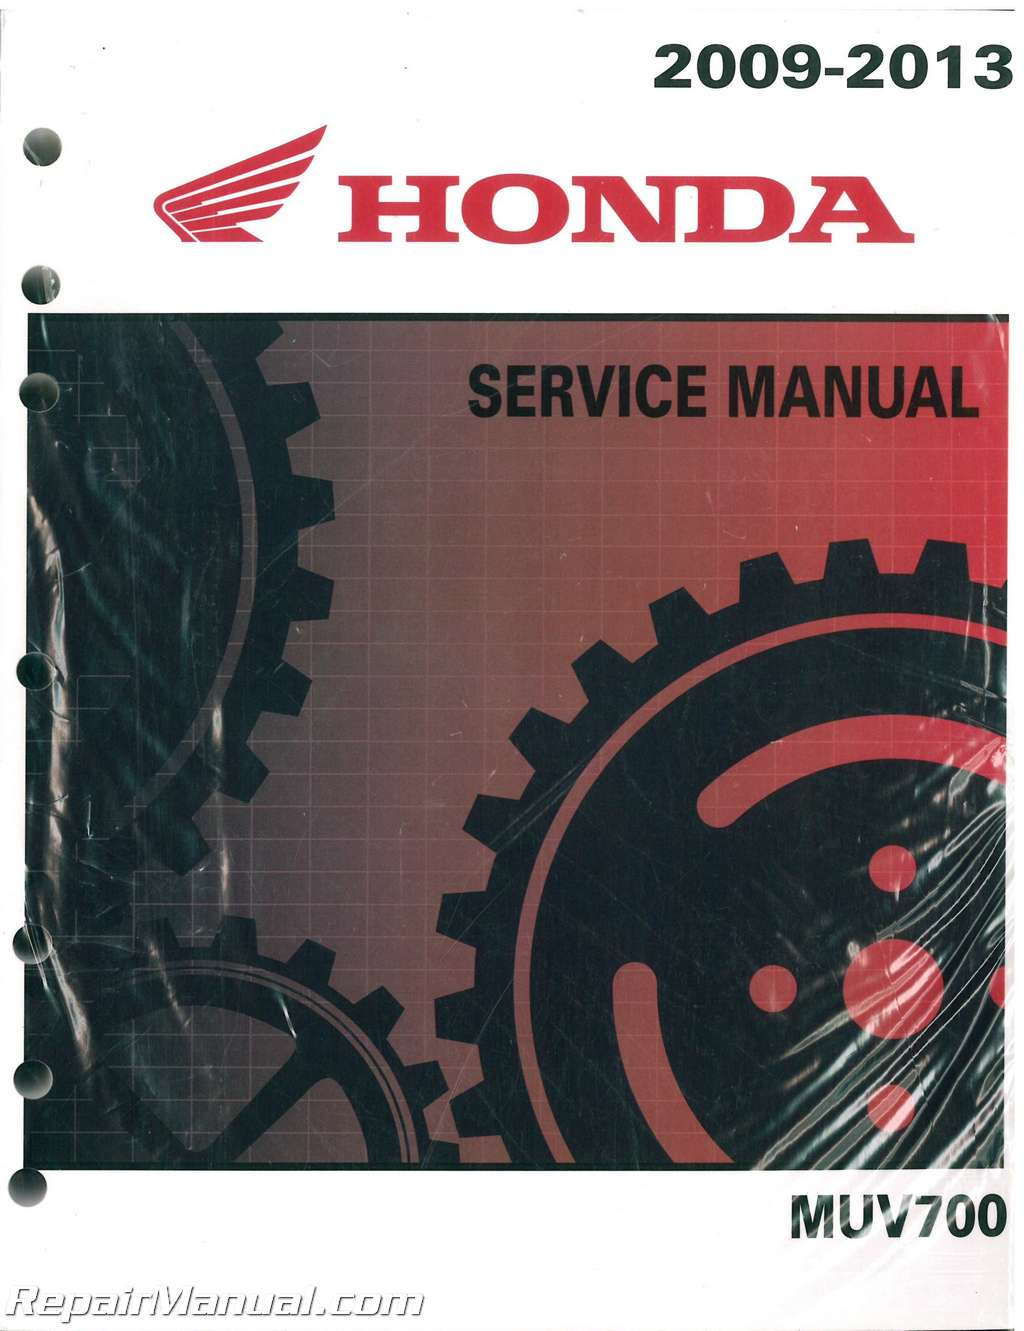 2009 2013 honda muv700 big red side by side service manual rh repairmanual com 1987 Honda Big Red 1986 Honda Big Red